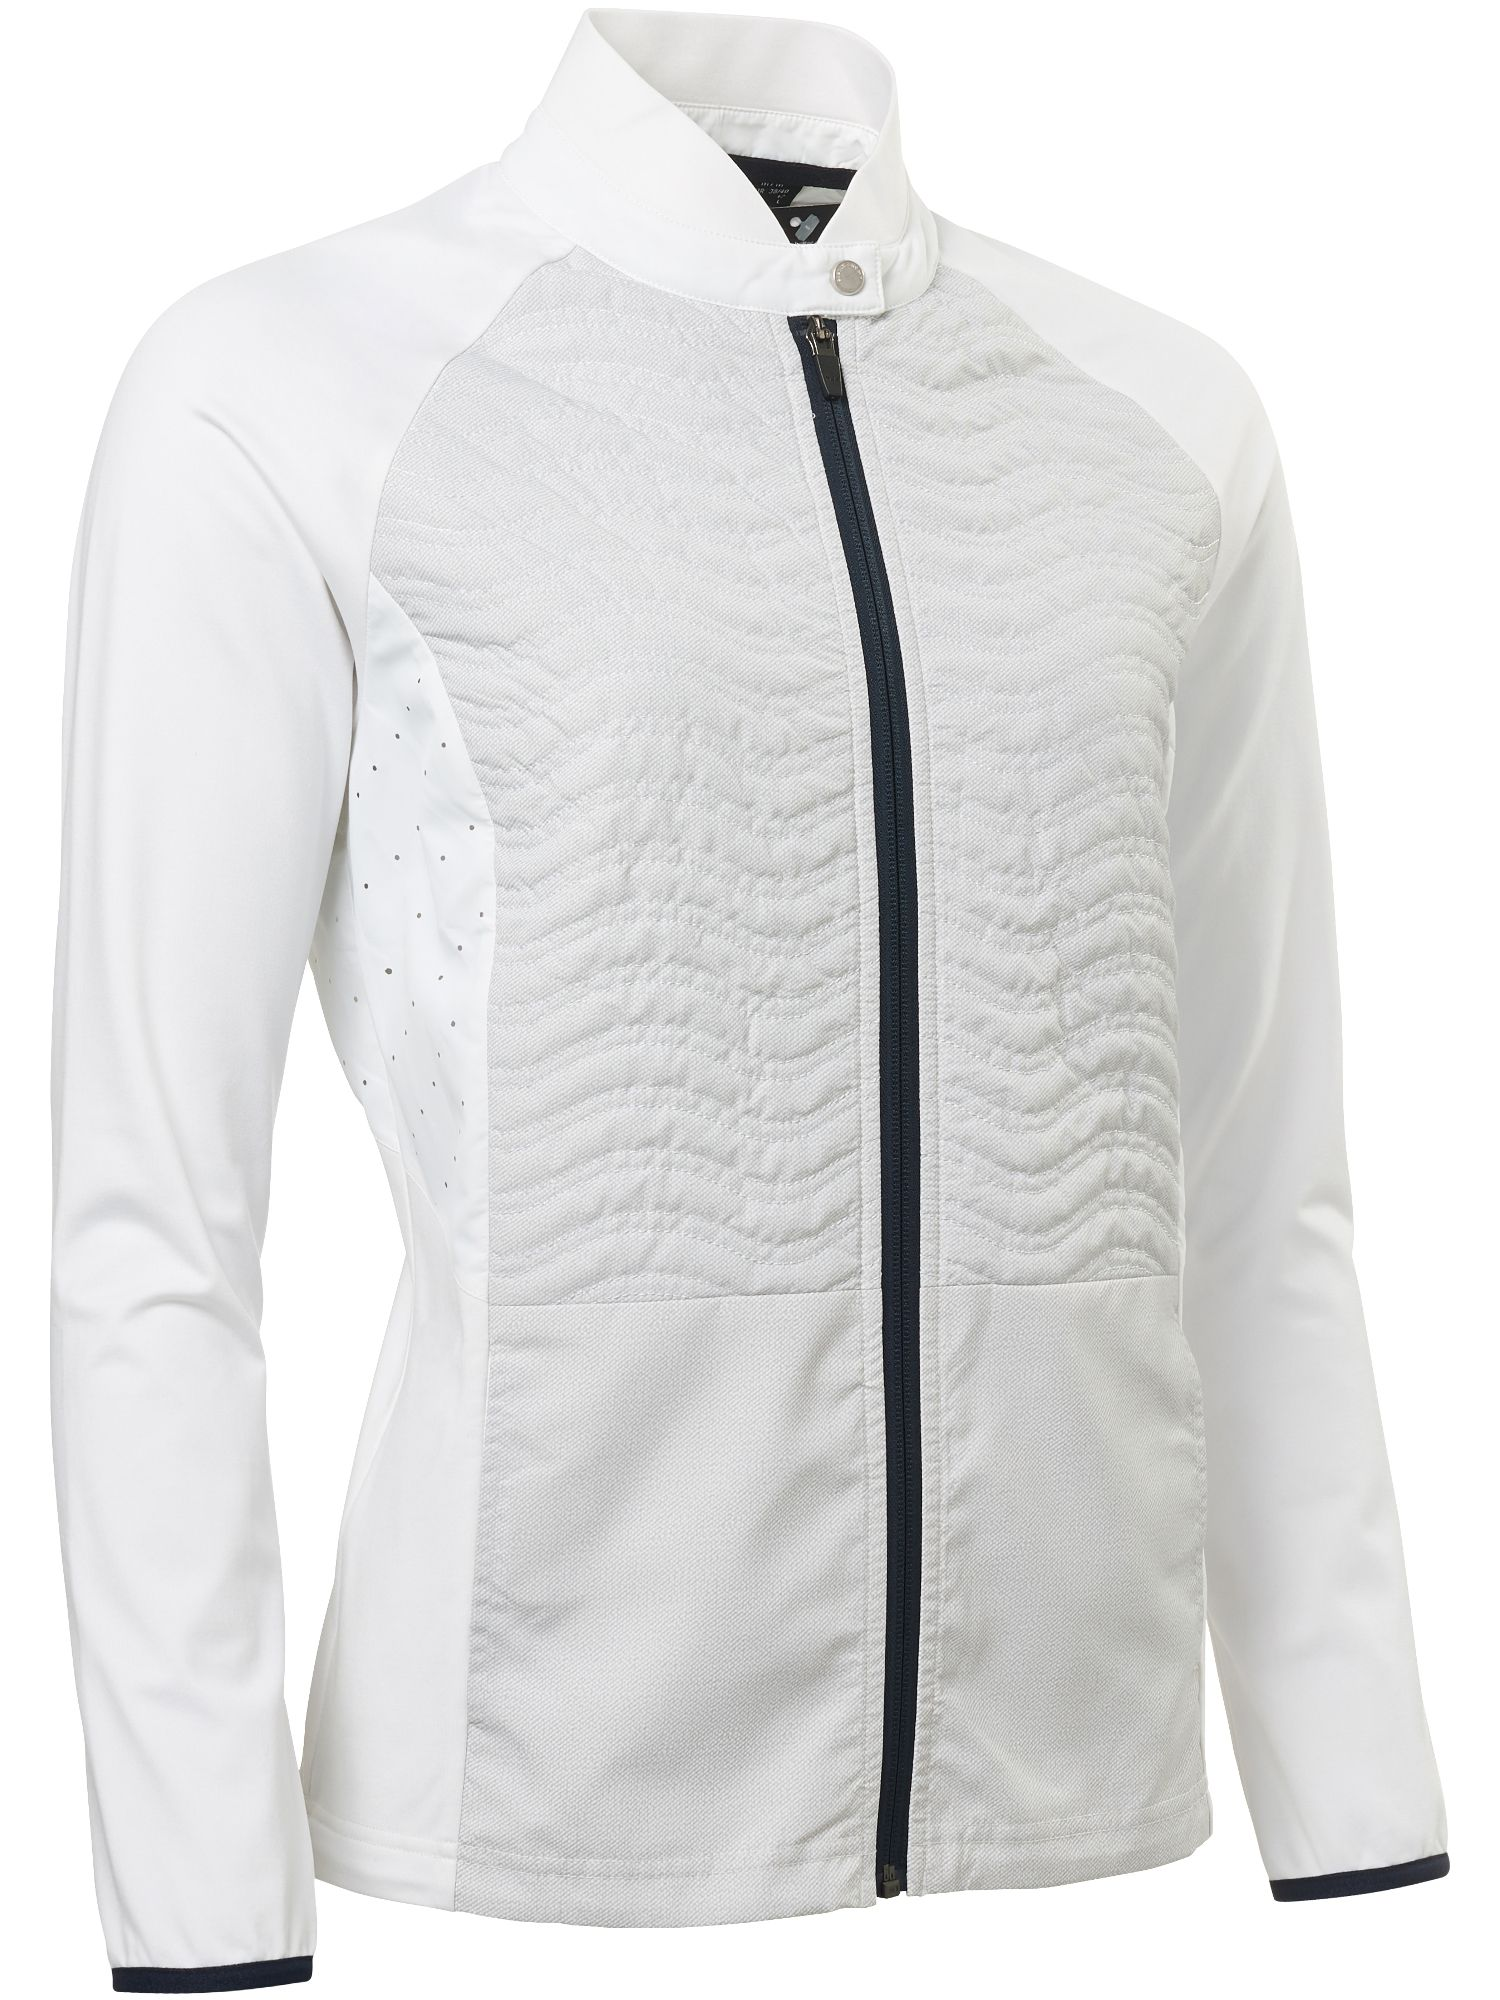 Abacus Troon Hybrid Jacket, White